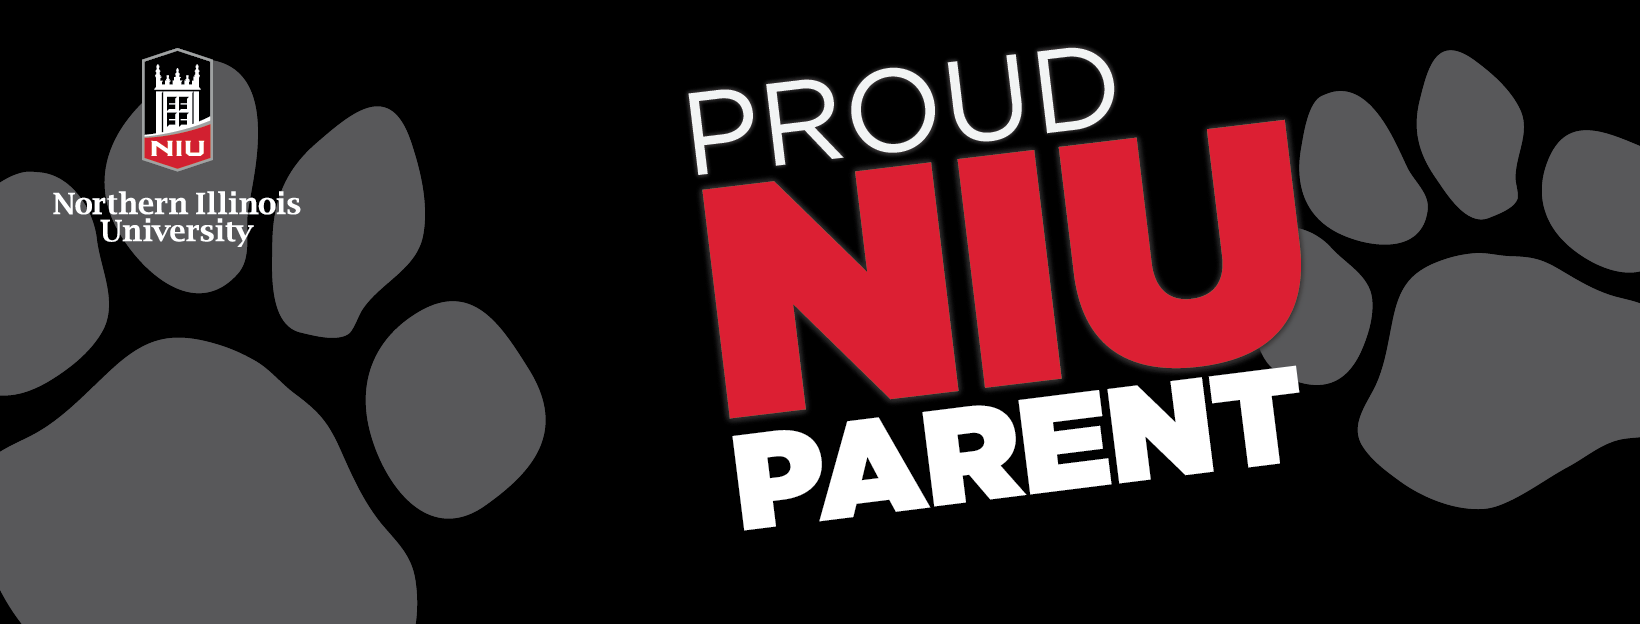 Proud Huskie Parent - Black for Profile